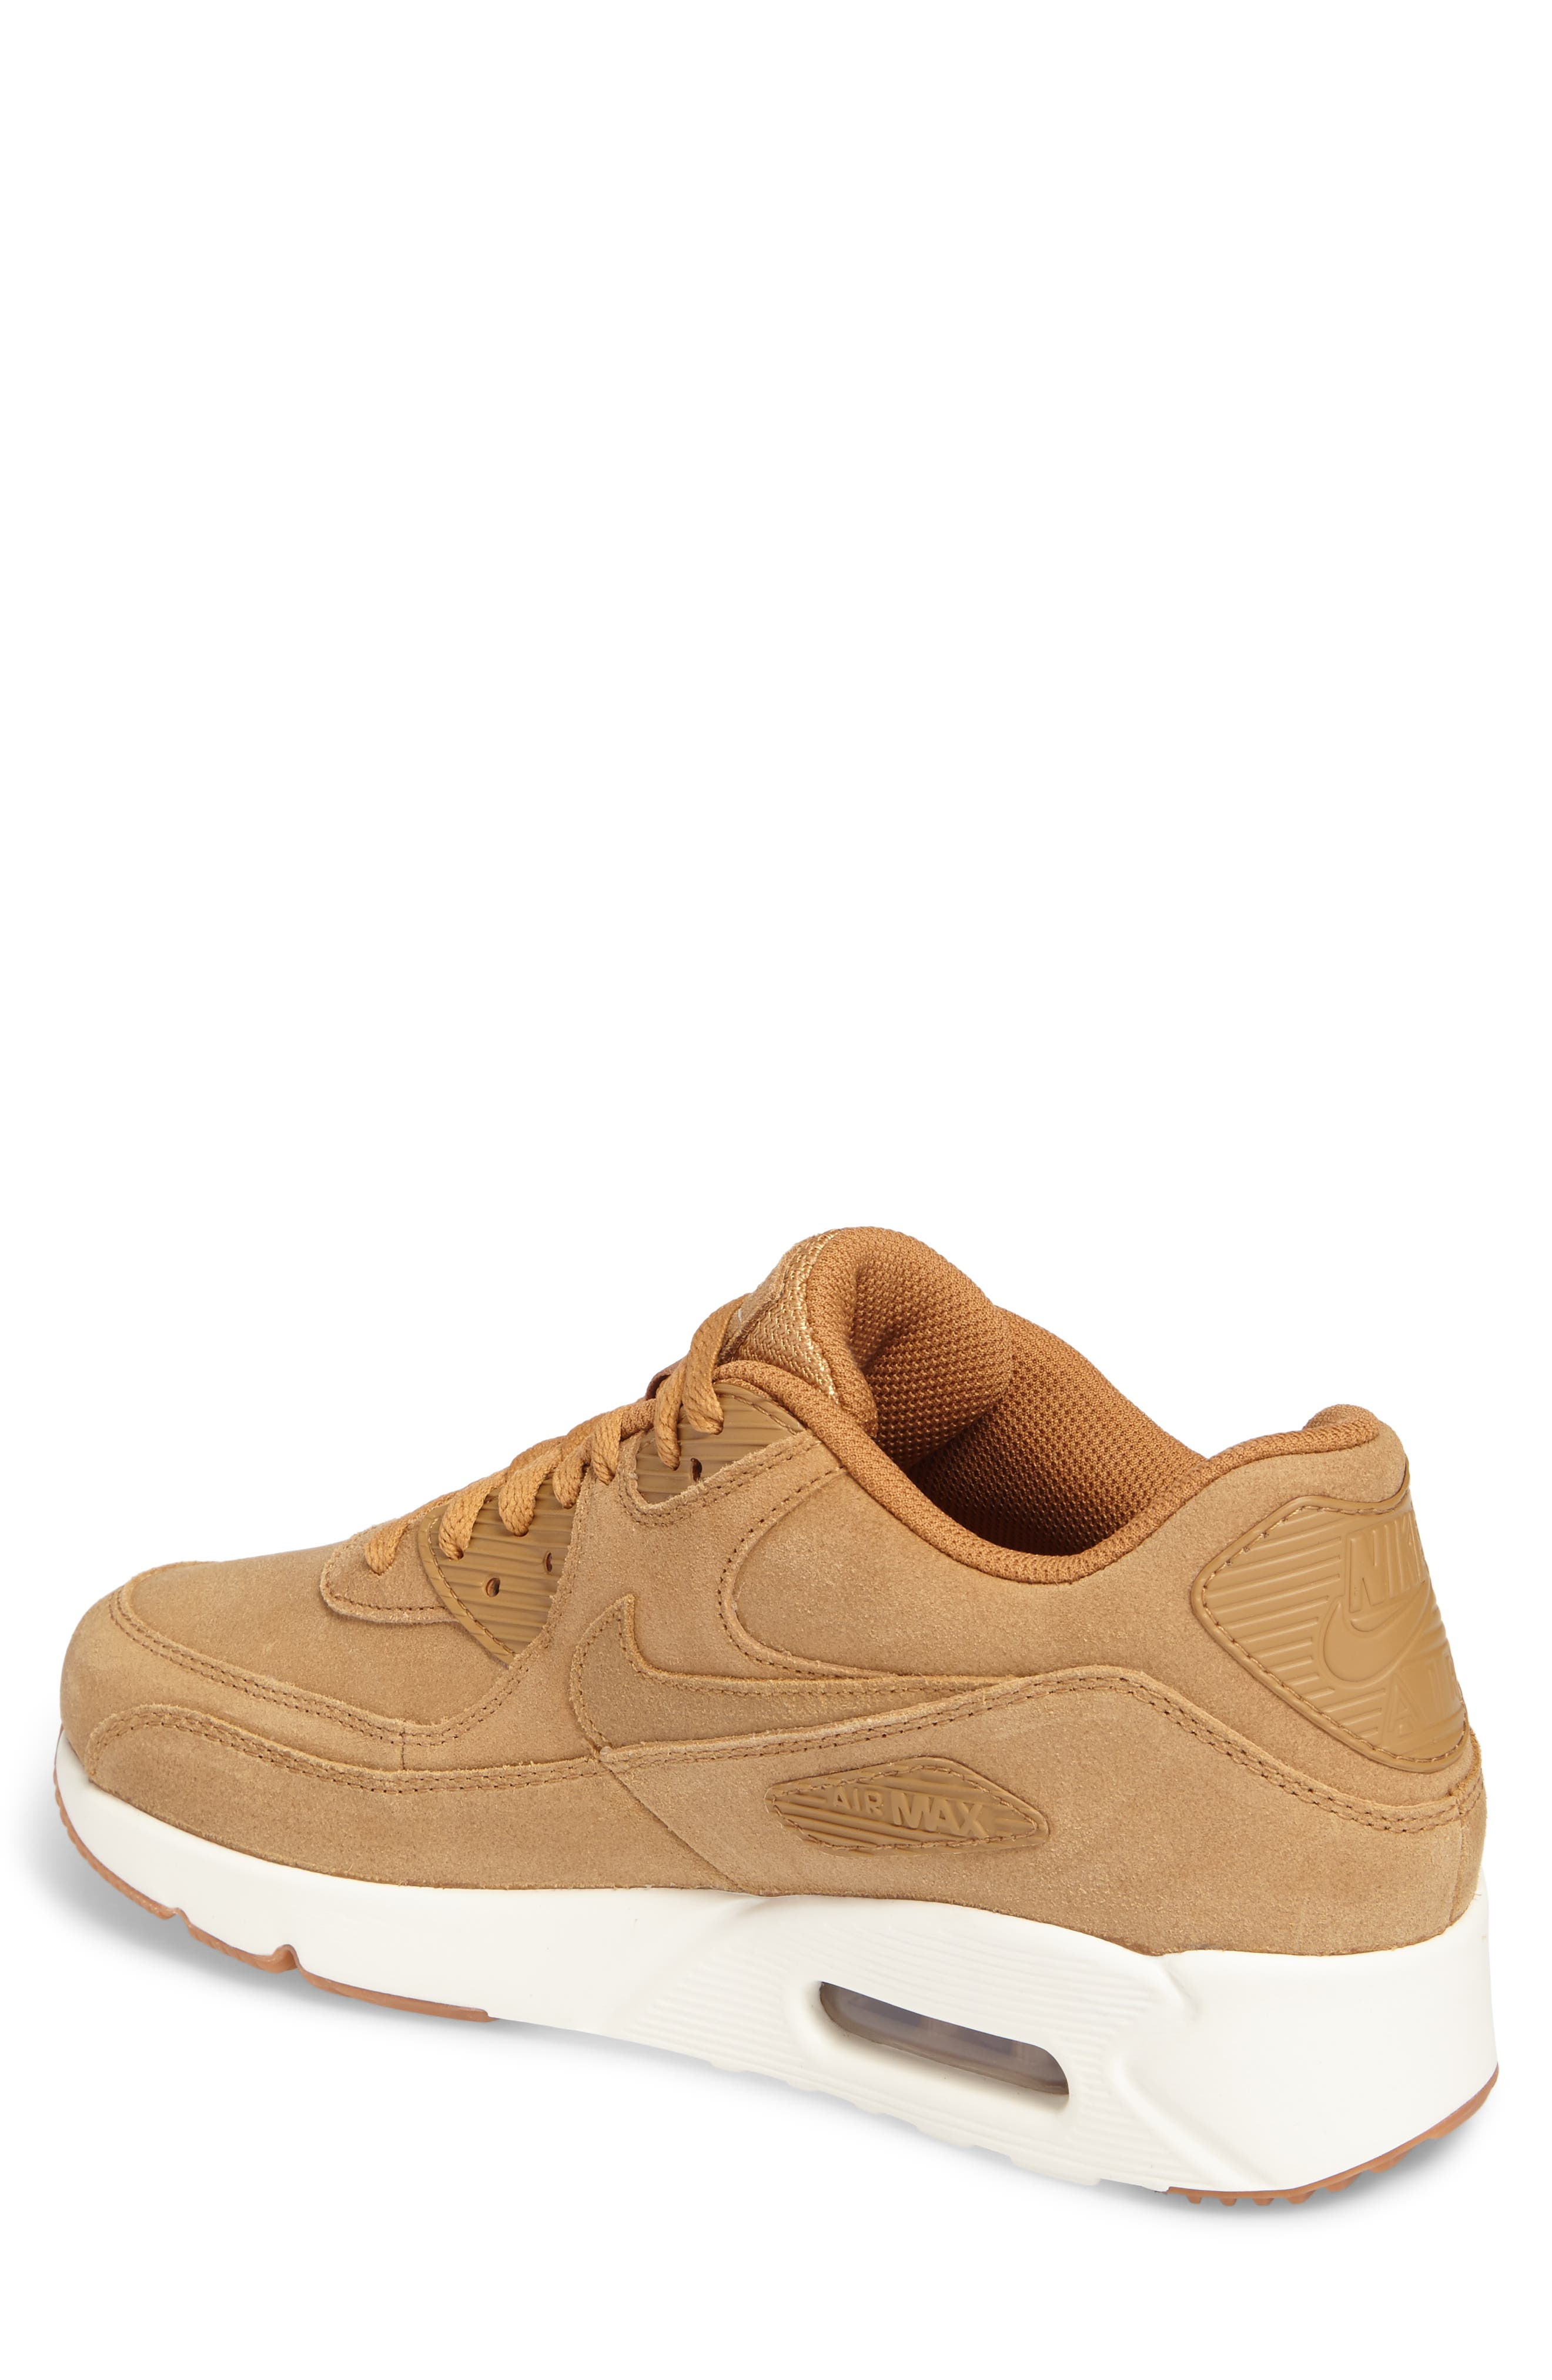 Air Max 90 Ultra 2.0 Sneaker,                             Alternate thumbnail 2, color,                             Flax/Flax/Sail/Gum Med Brown